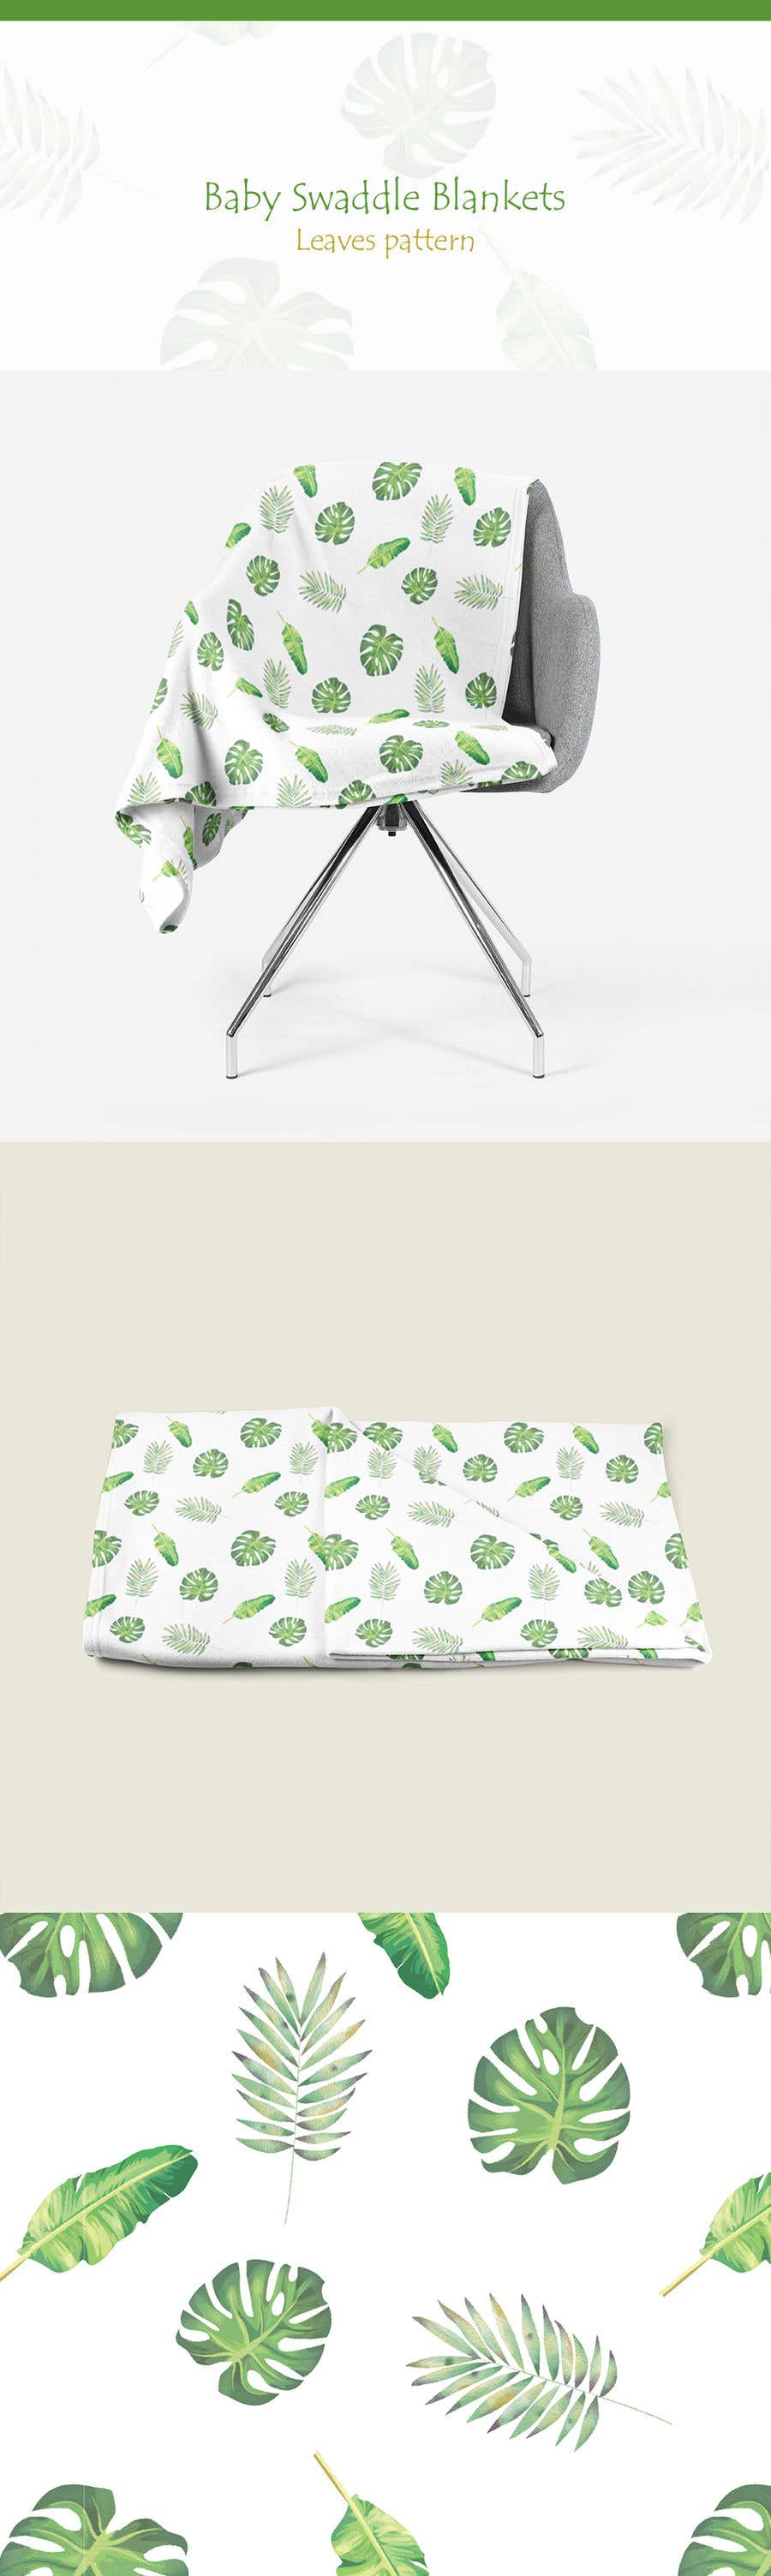 Proposition n°128 du concours Design 3 Baby Swaddle Blankets